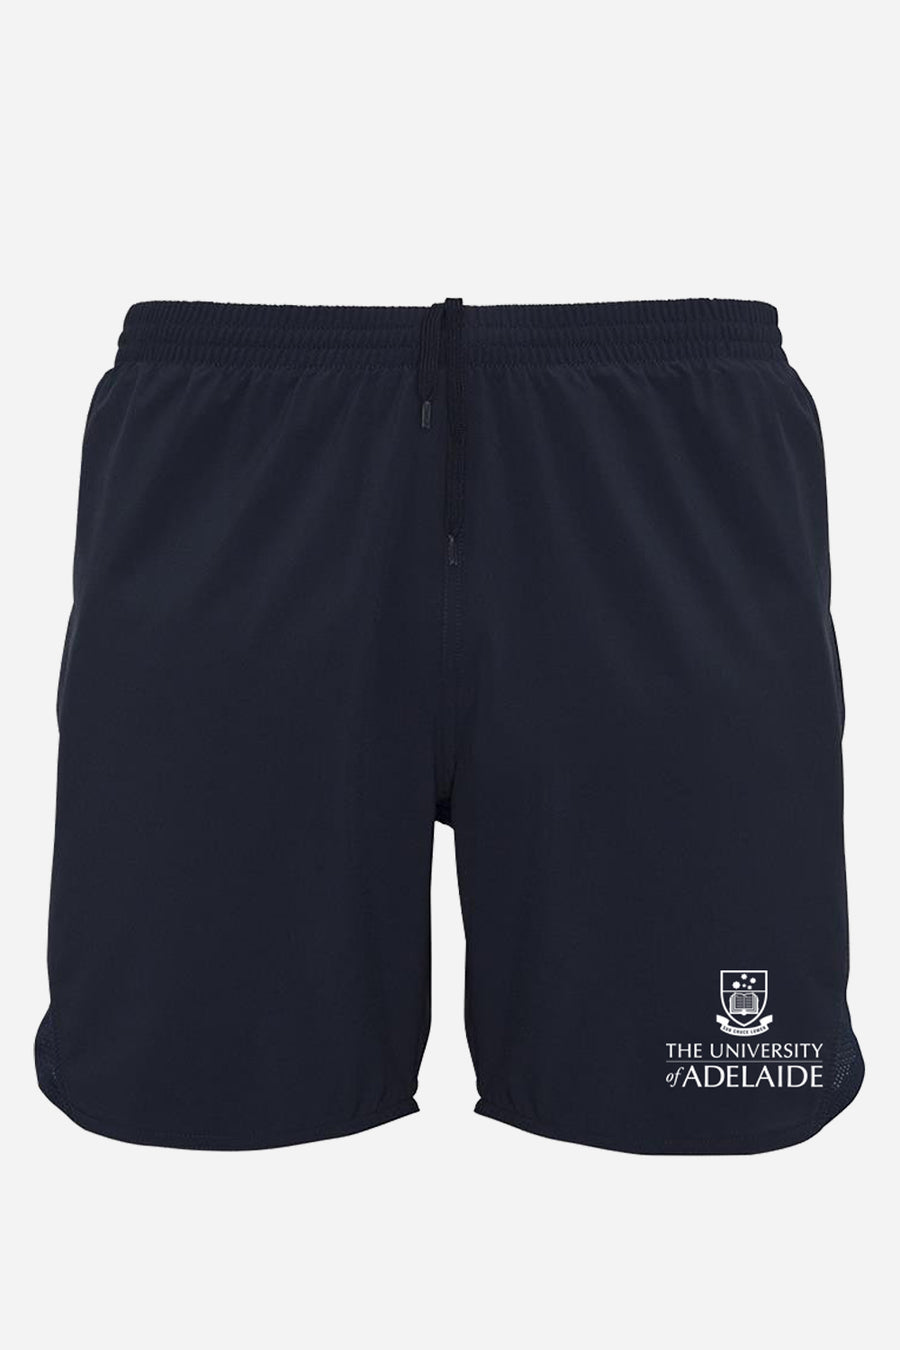 Shorts Navy Men's or Women's - The Adelaide Store